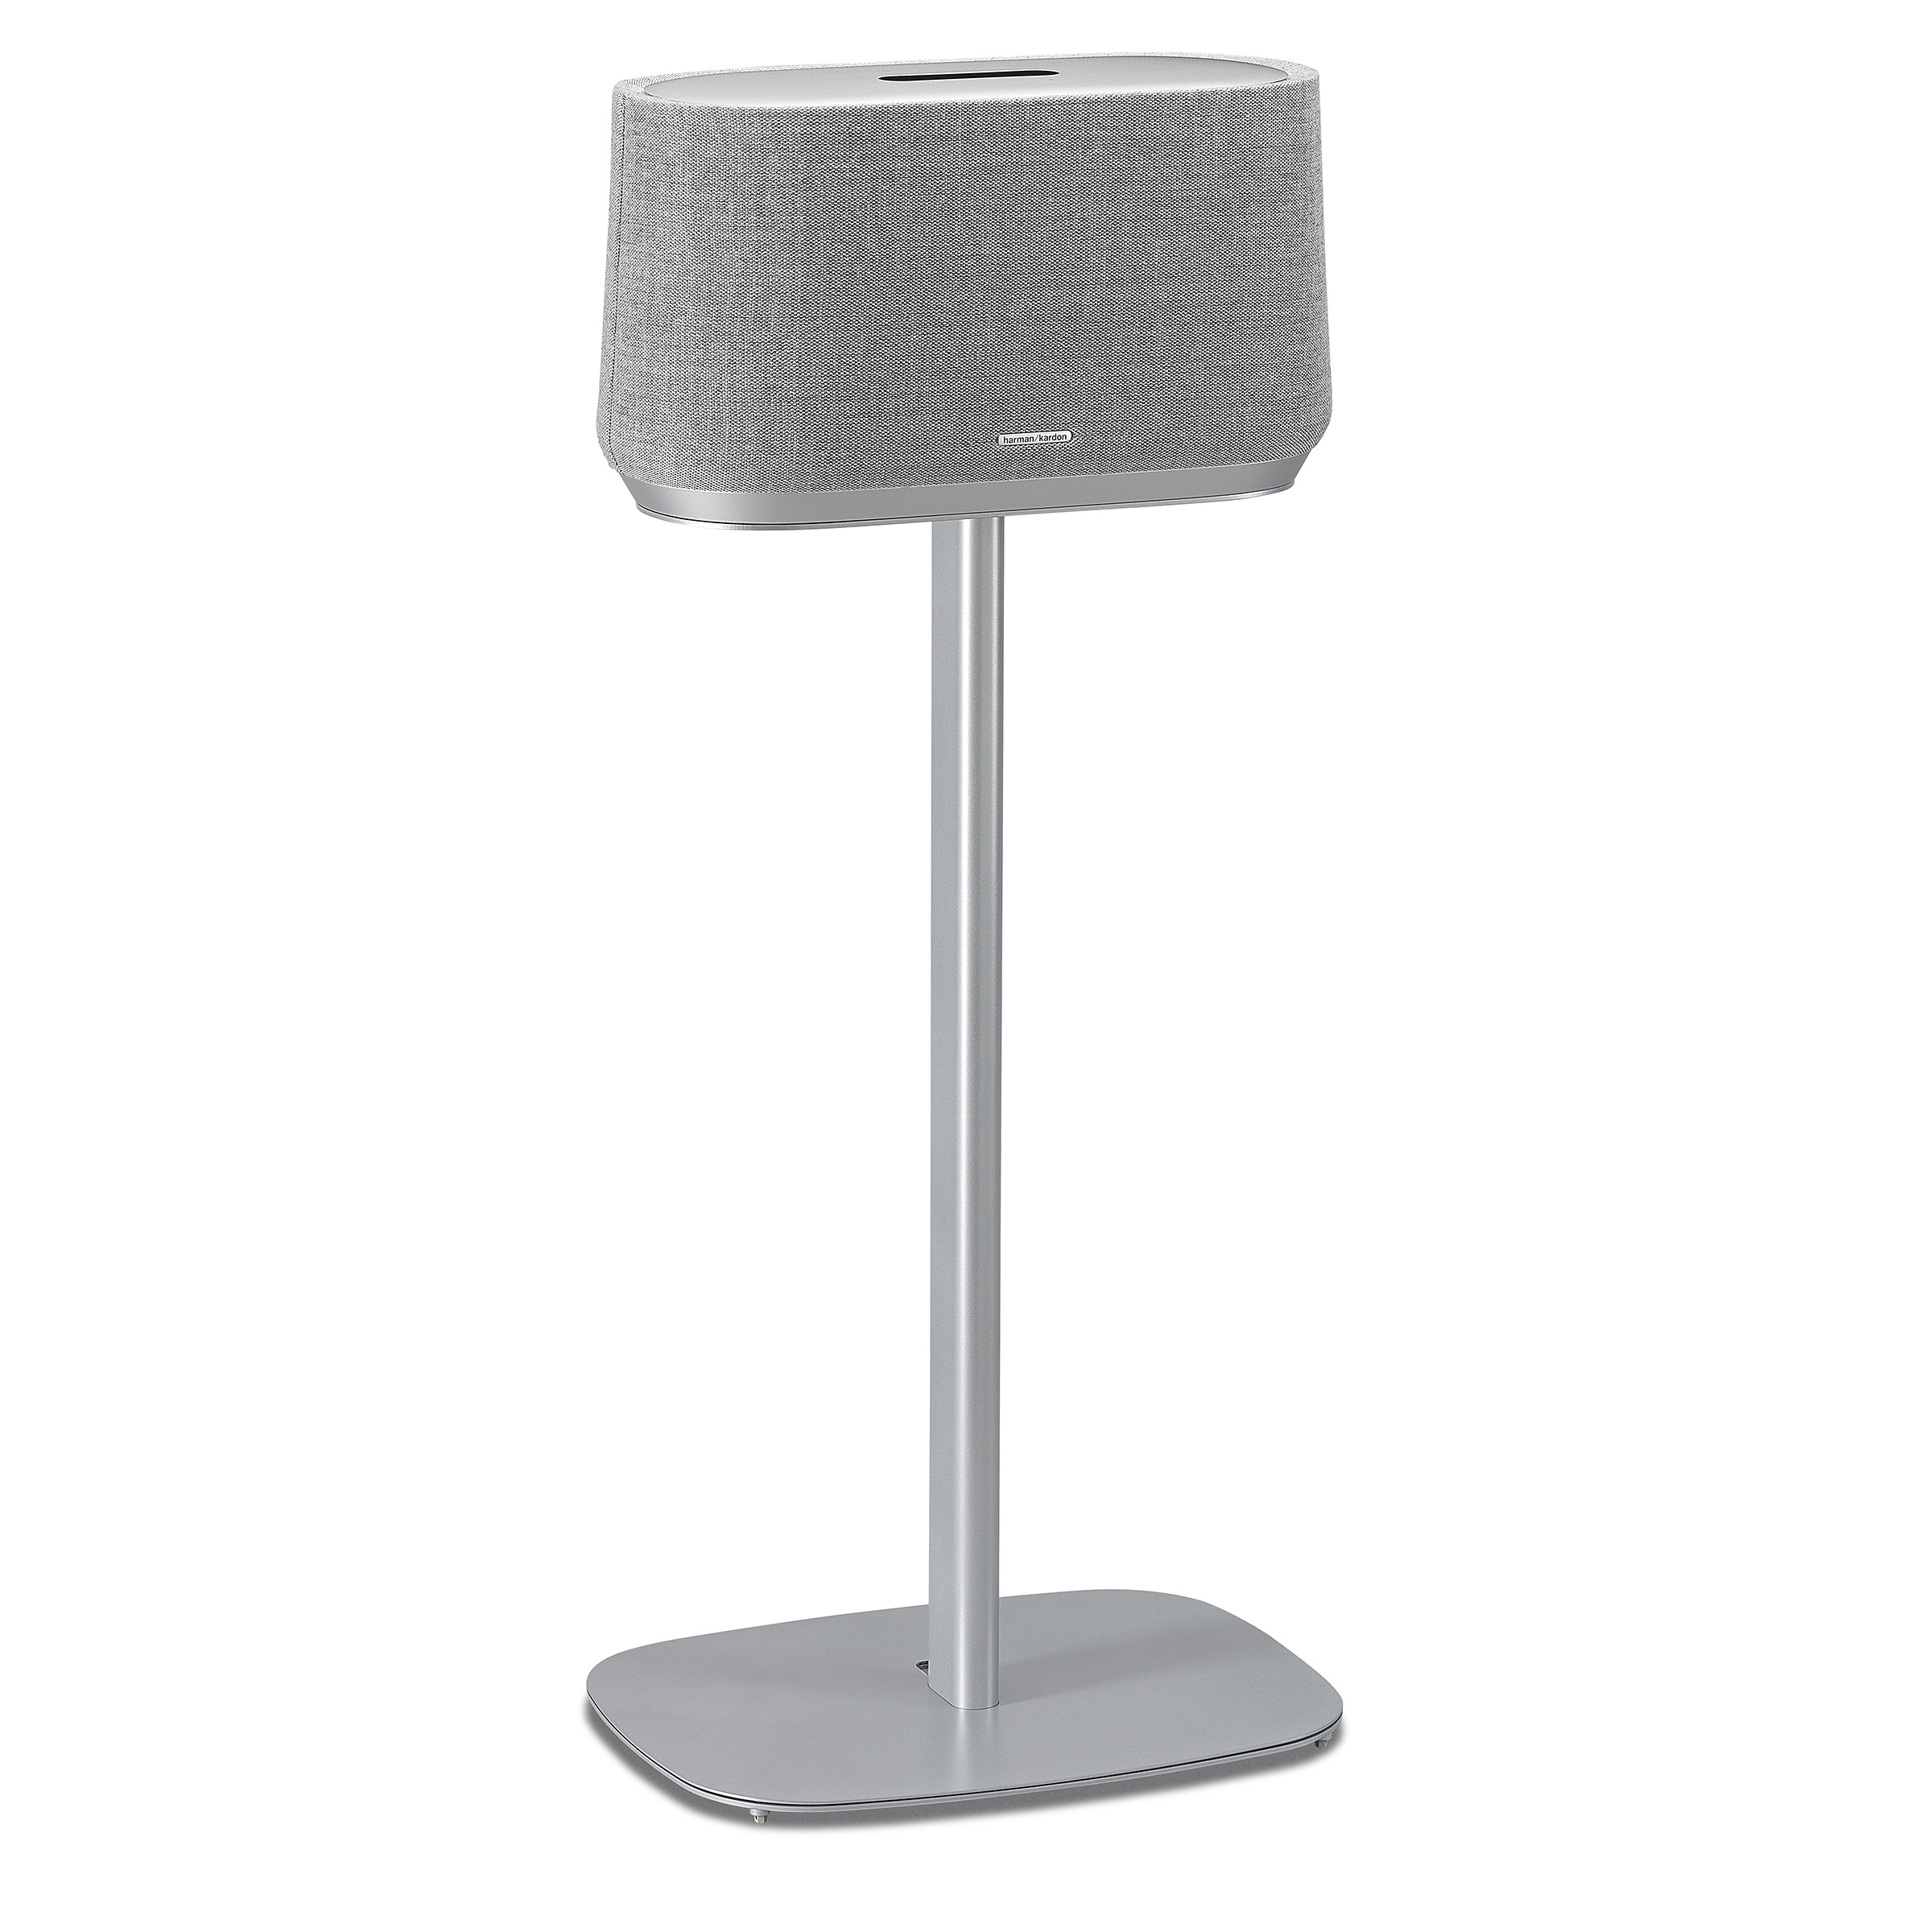 Harman Kardon Citation 500 standaard grijs 6